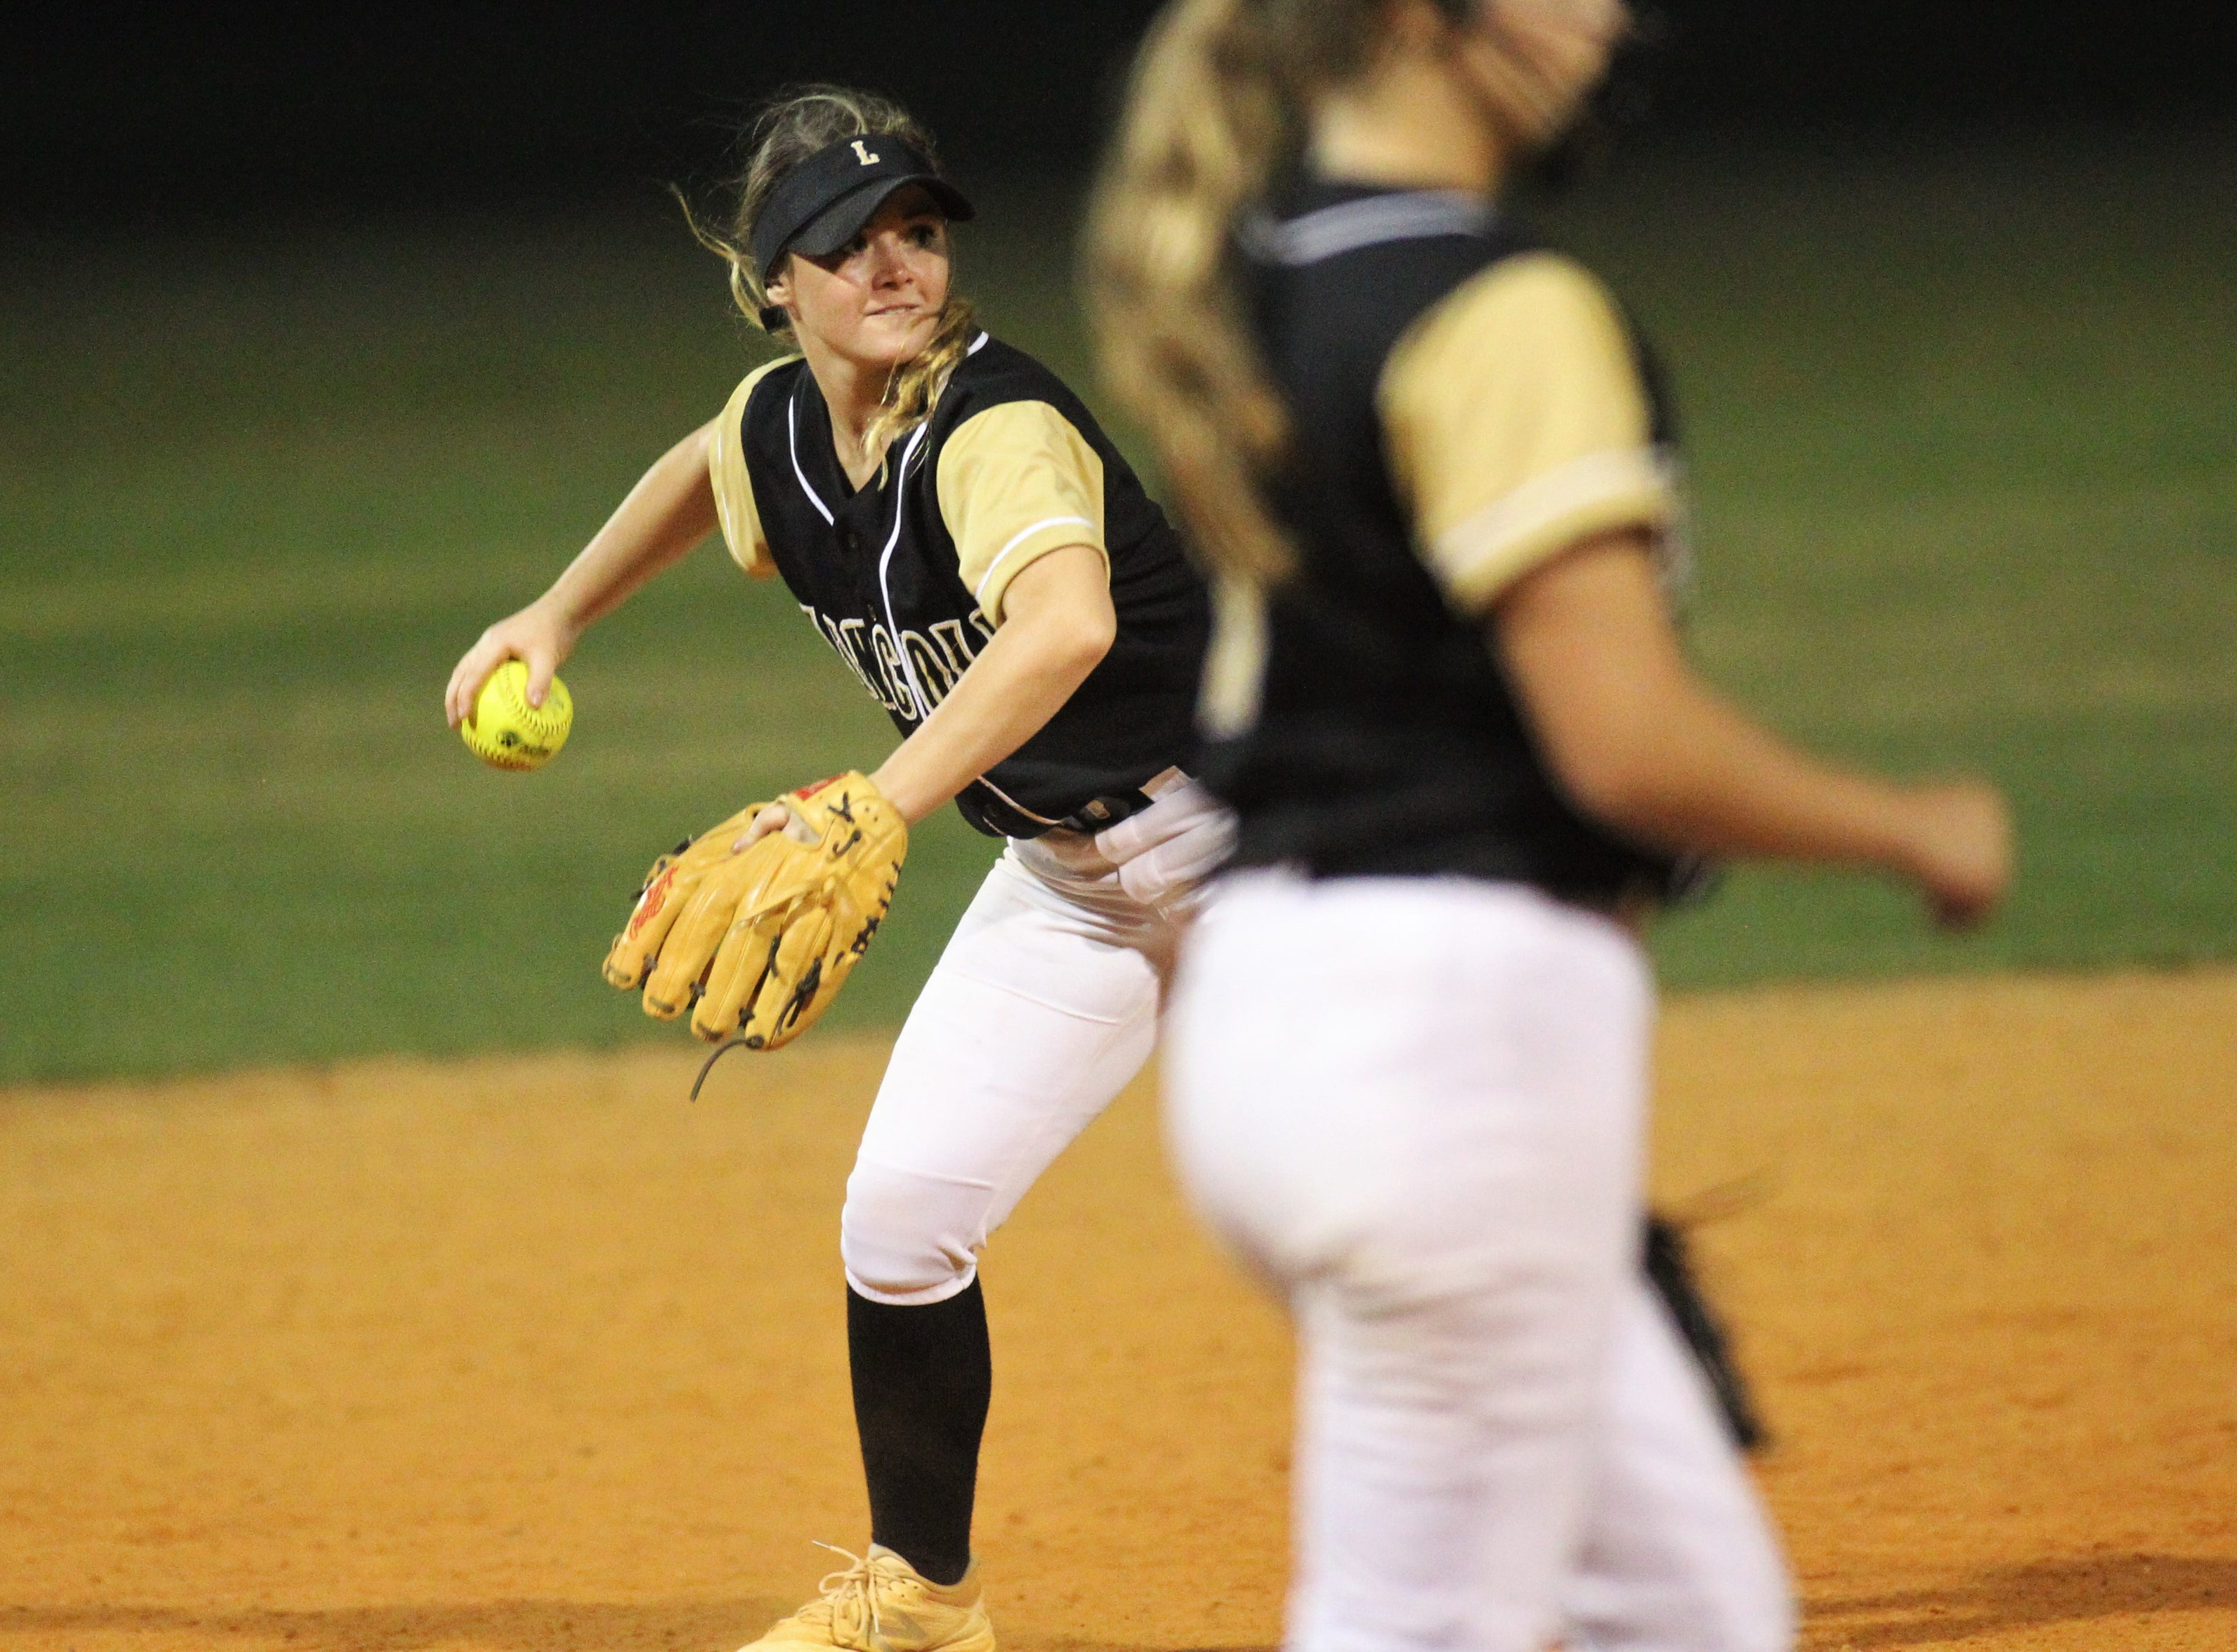 Lincoln senior shortstop Shelby Sloan throws to first for an out as Lincoln's softball team beat Florida High 7-3 on Thursday, April 4, 2019.